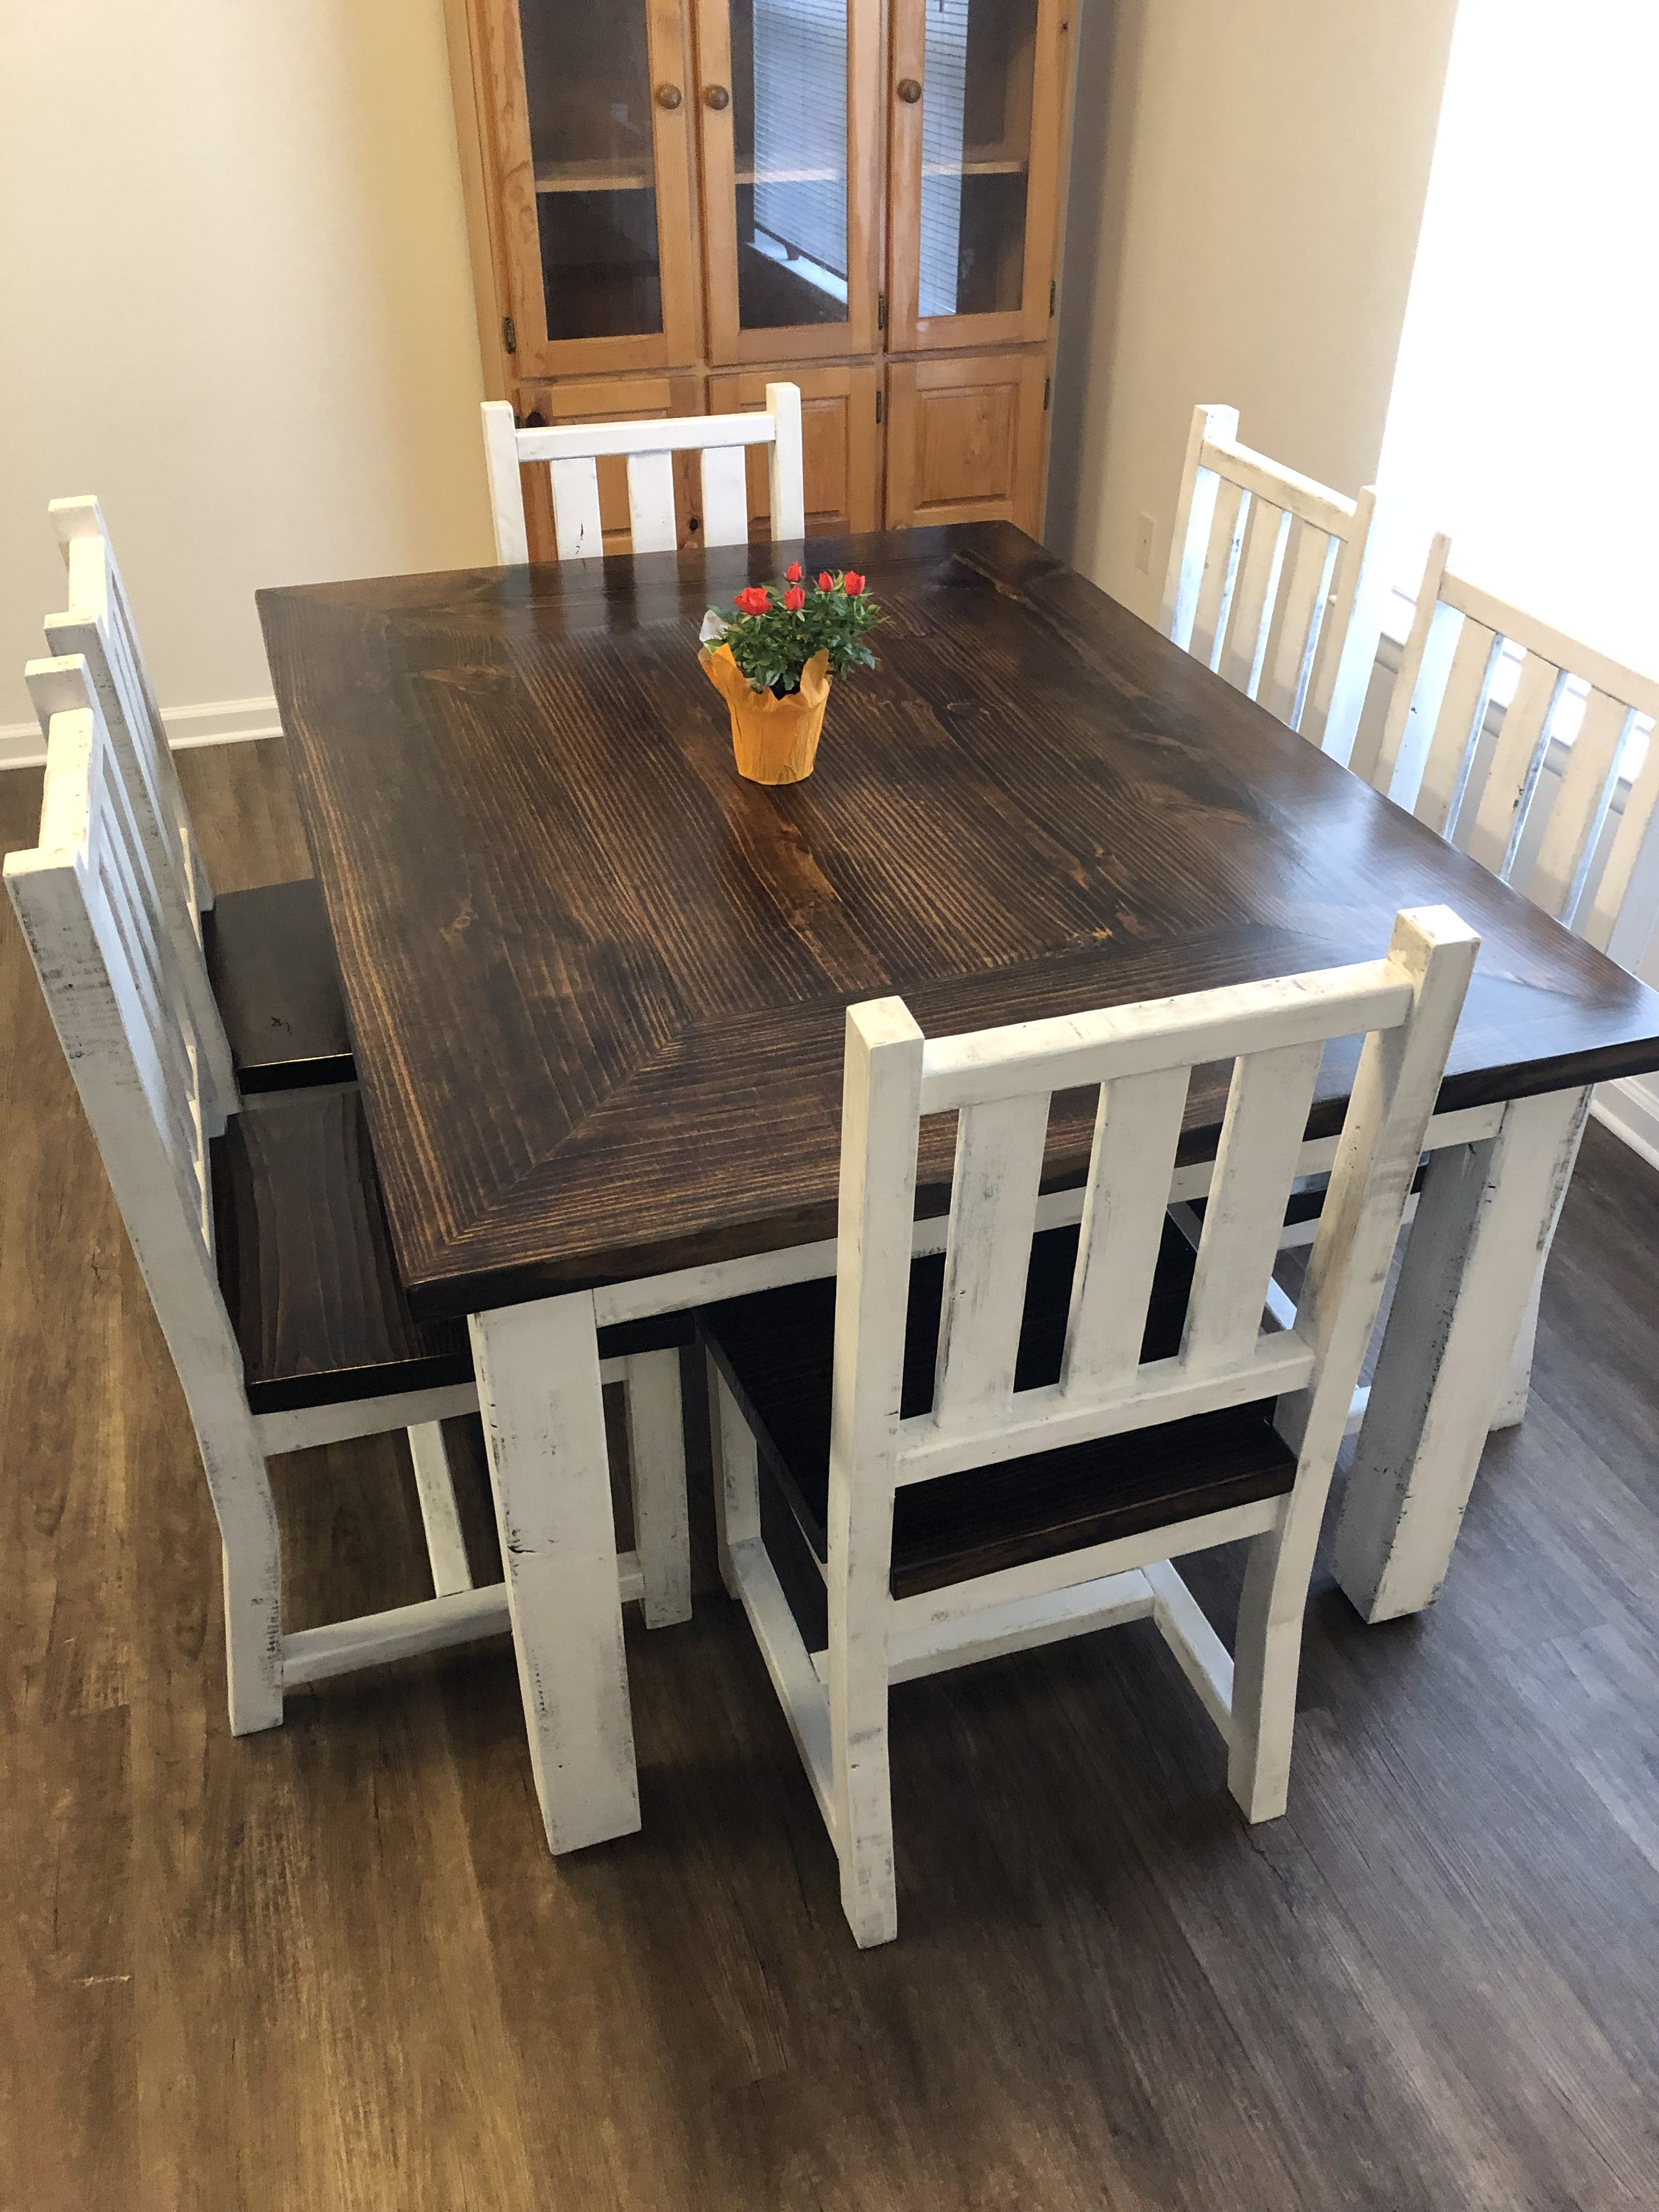 How To Build 6 Farmhouse Style Chairs Dining Room Chairs Diy Rustic Dining Room Chairs Farmhouse Style Chairs